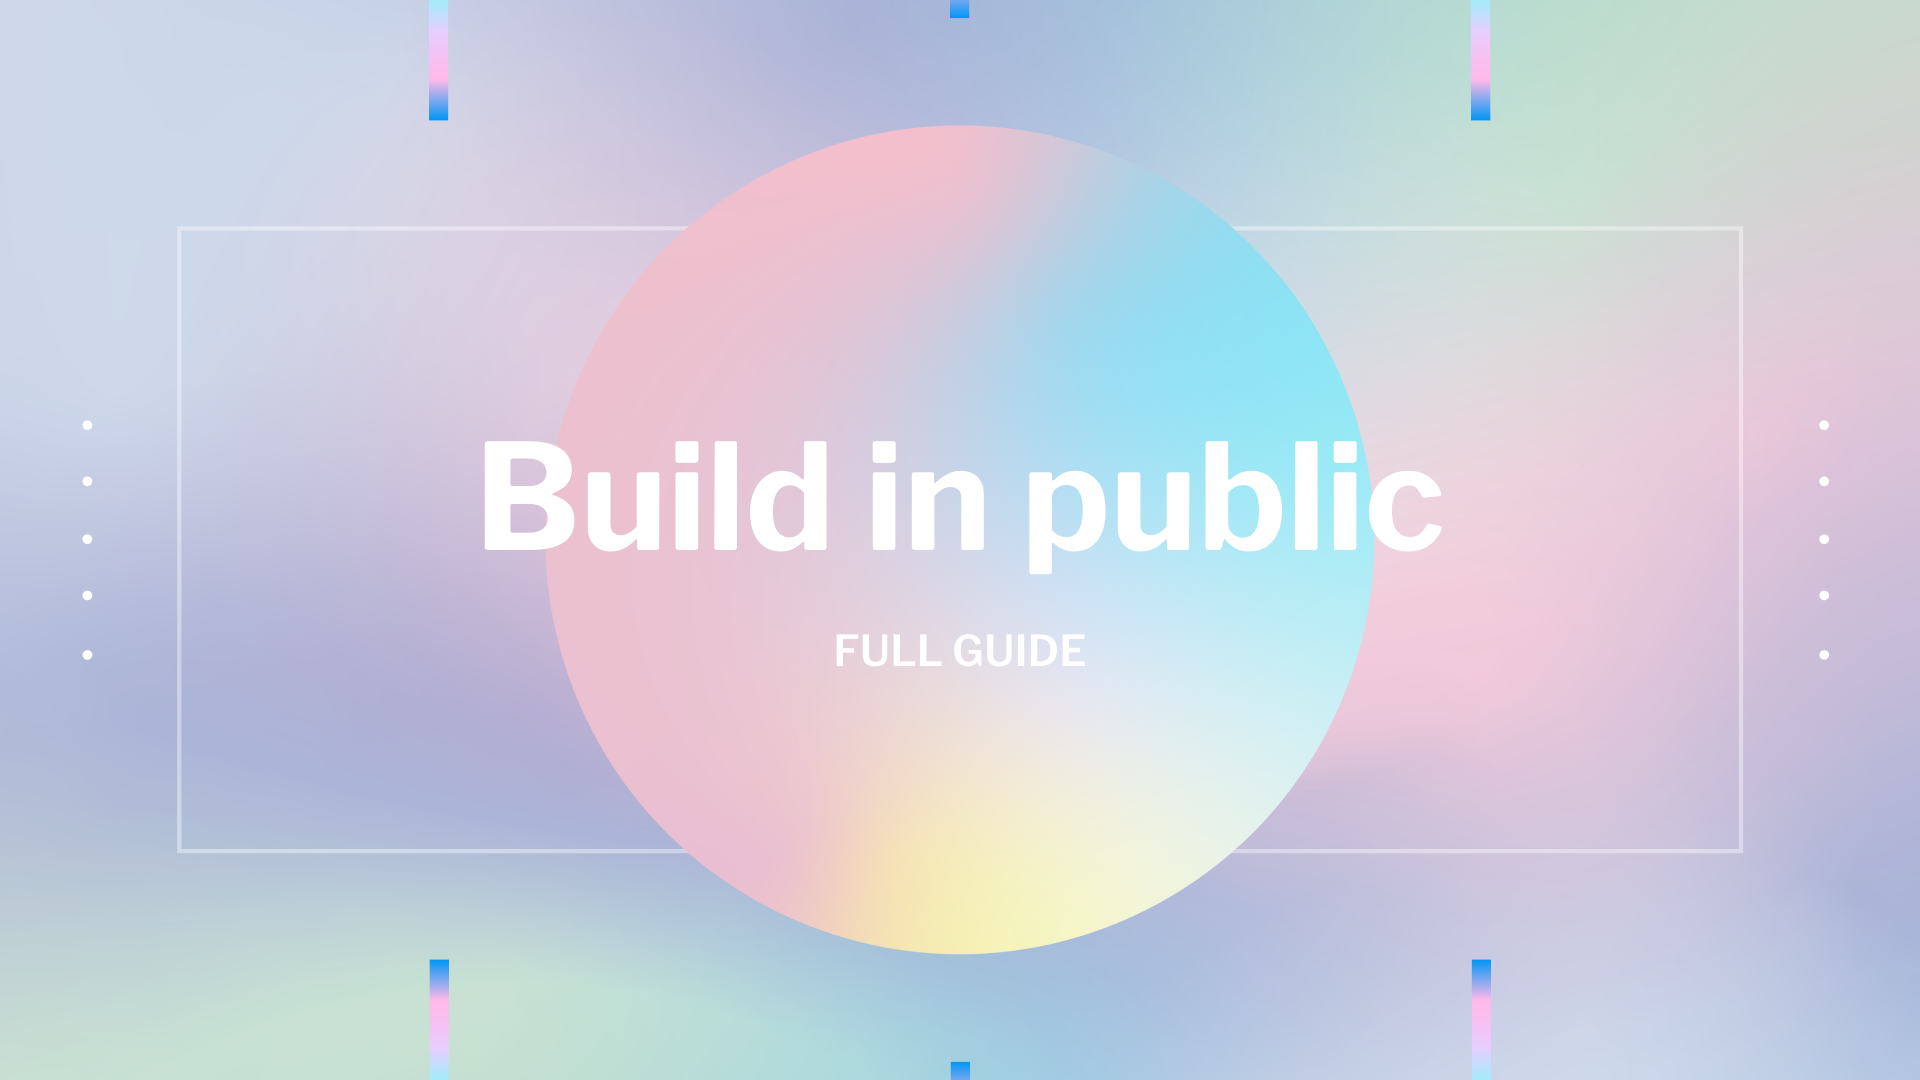 What is build in public?